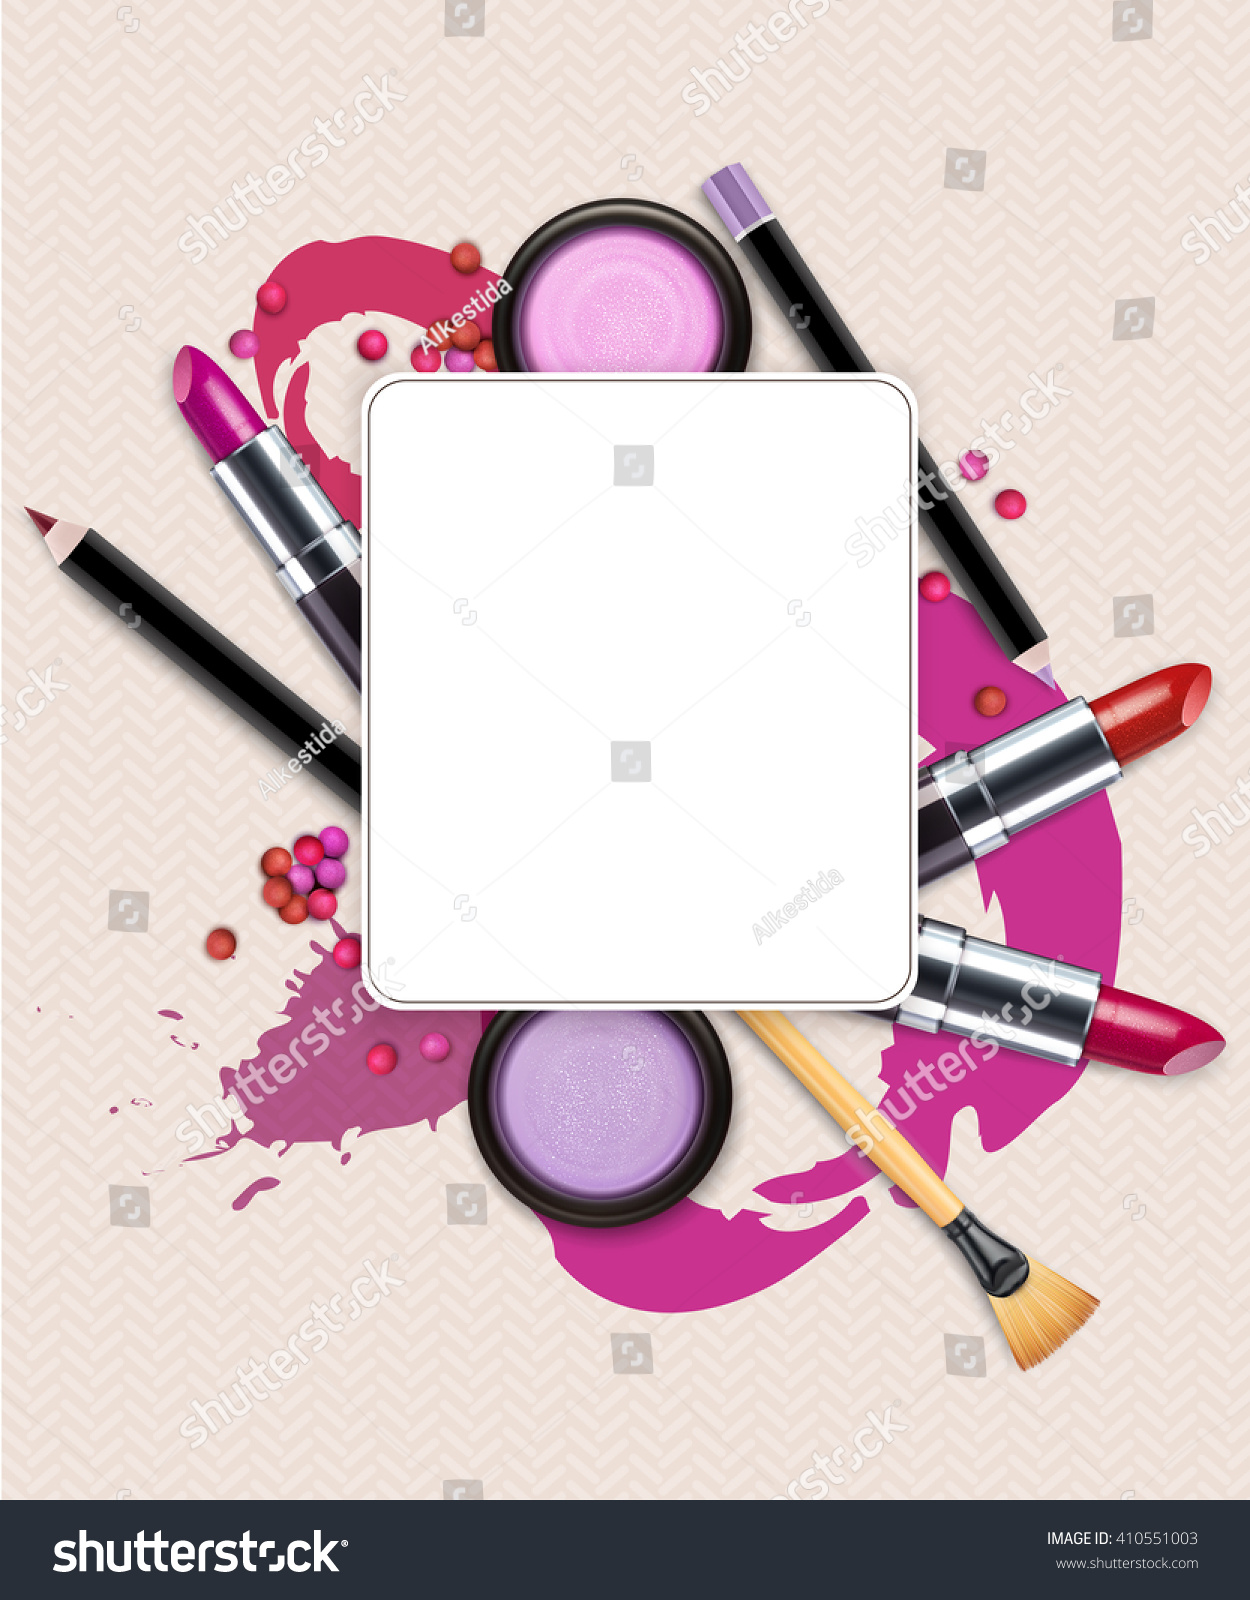 Background Cosmetics Makeup Flyer Template Jpeg Version Stock